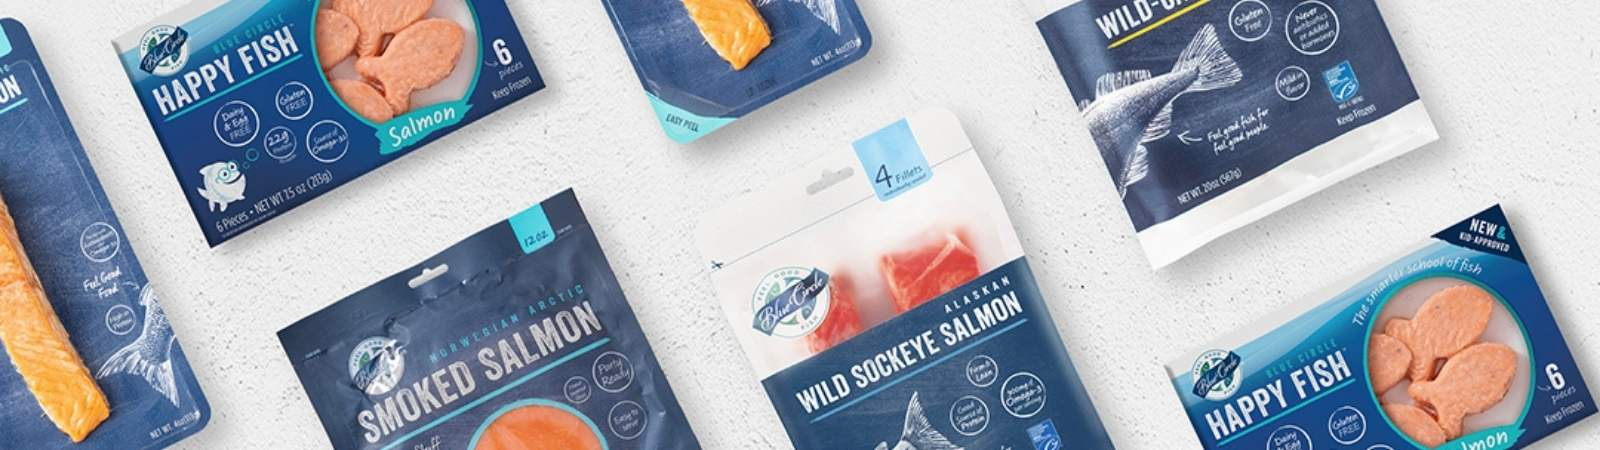 blue circle food products